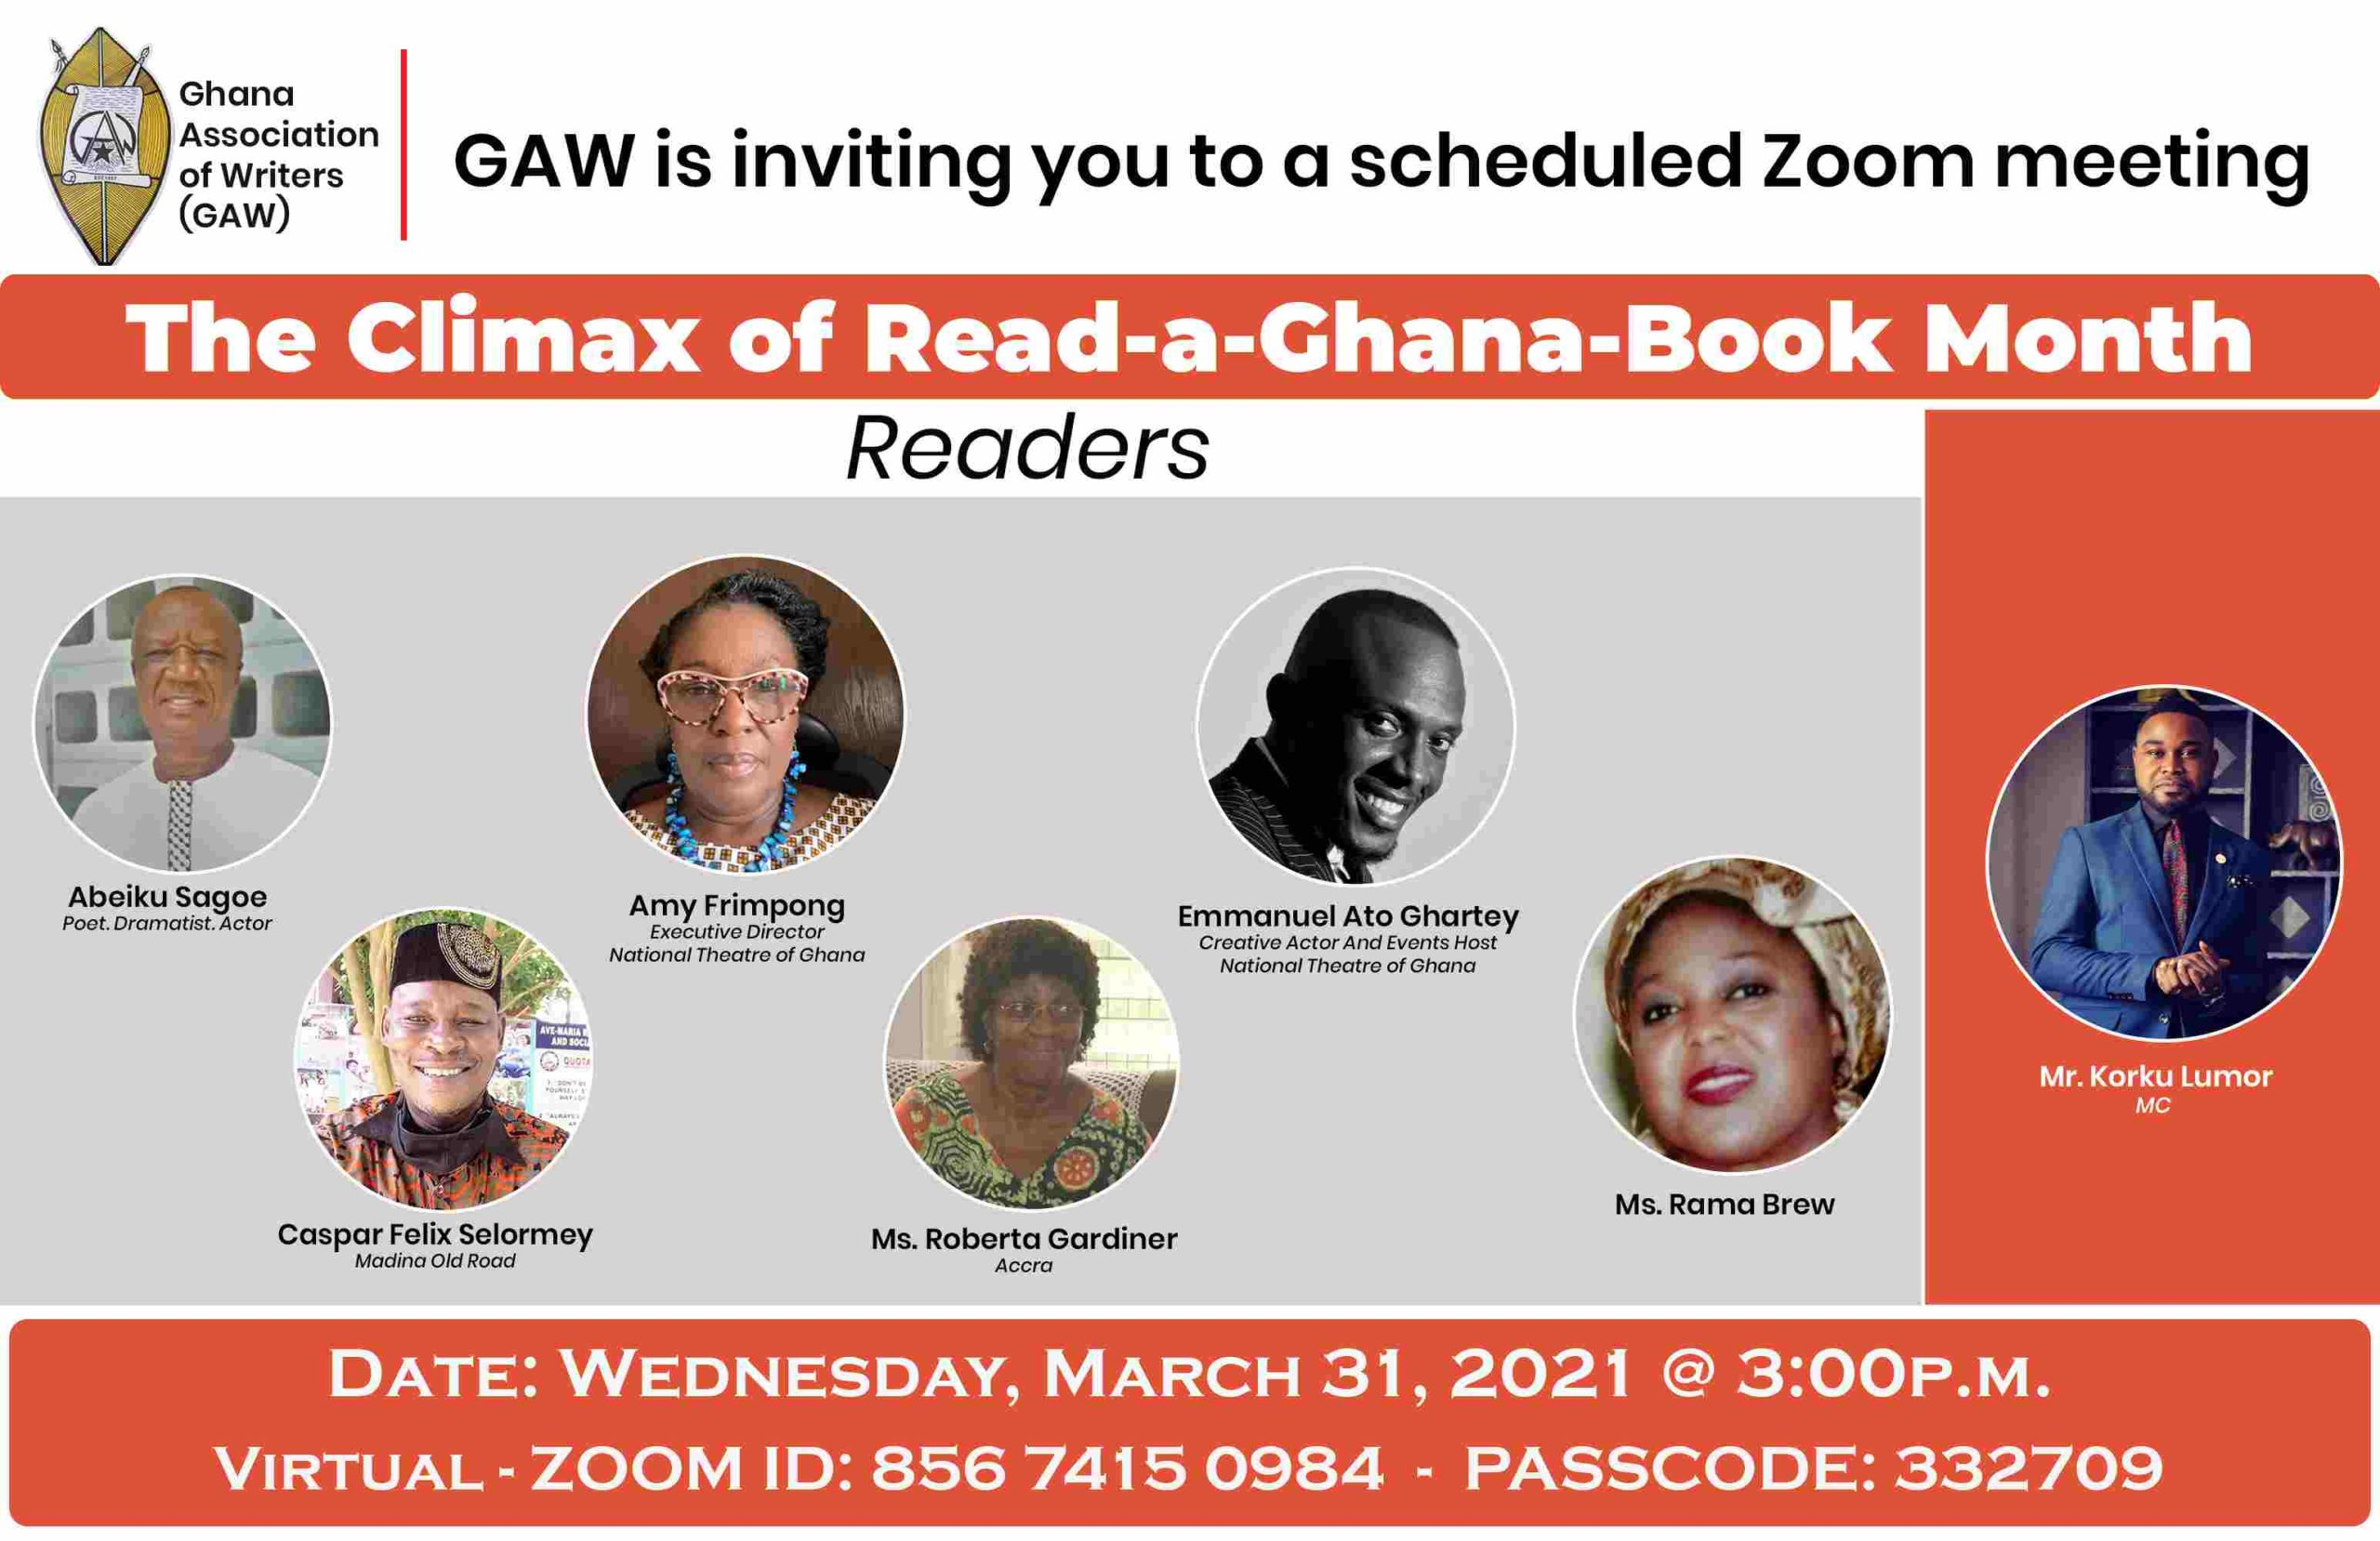 The Climax of Read-a-Ghana-Book Month